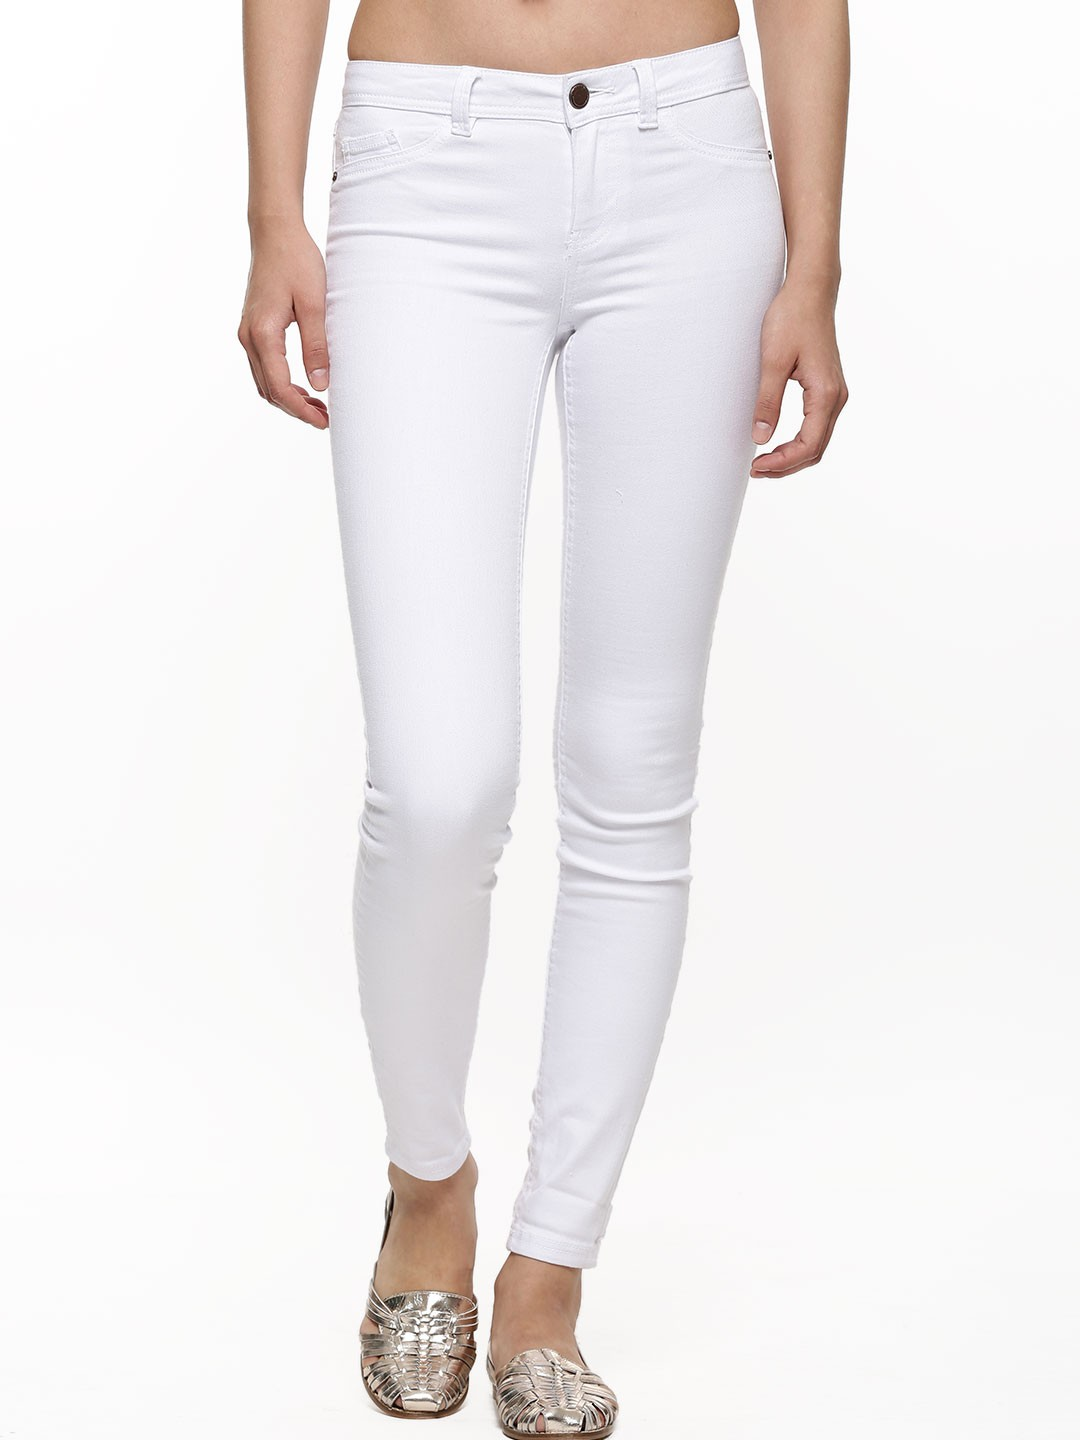 Buy NEW LOOK Super Skinny Denim Jeans For Women - Women's White ...